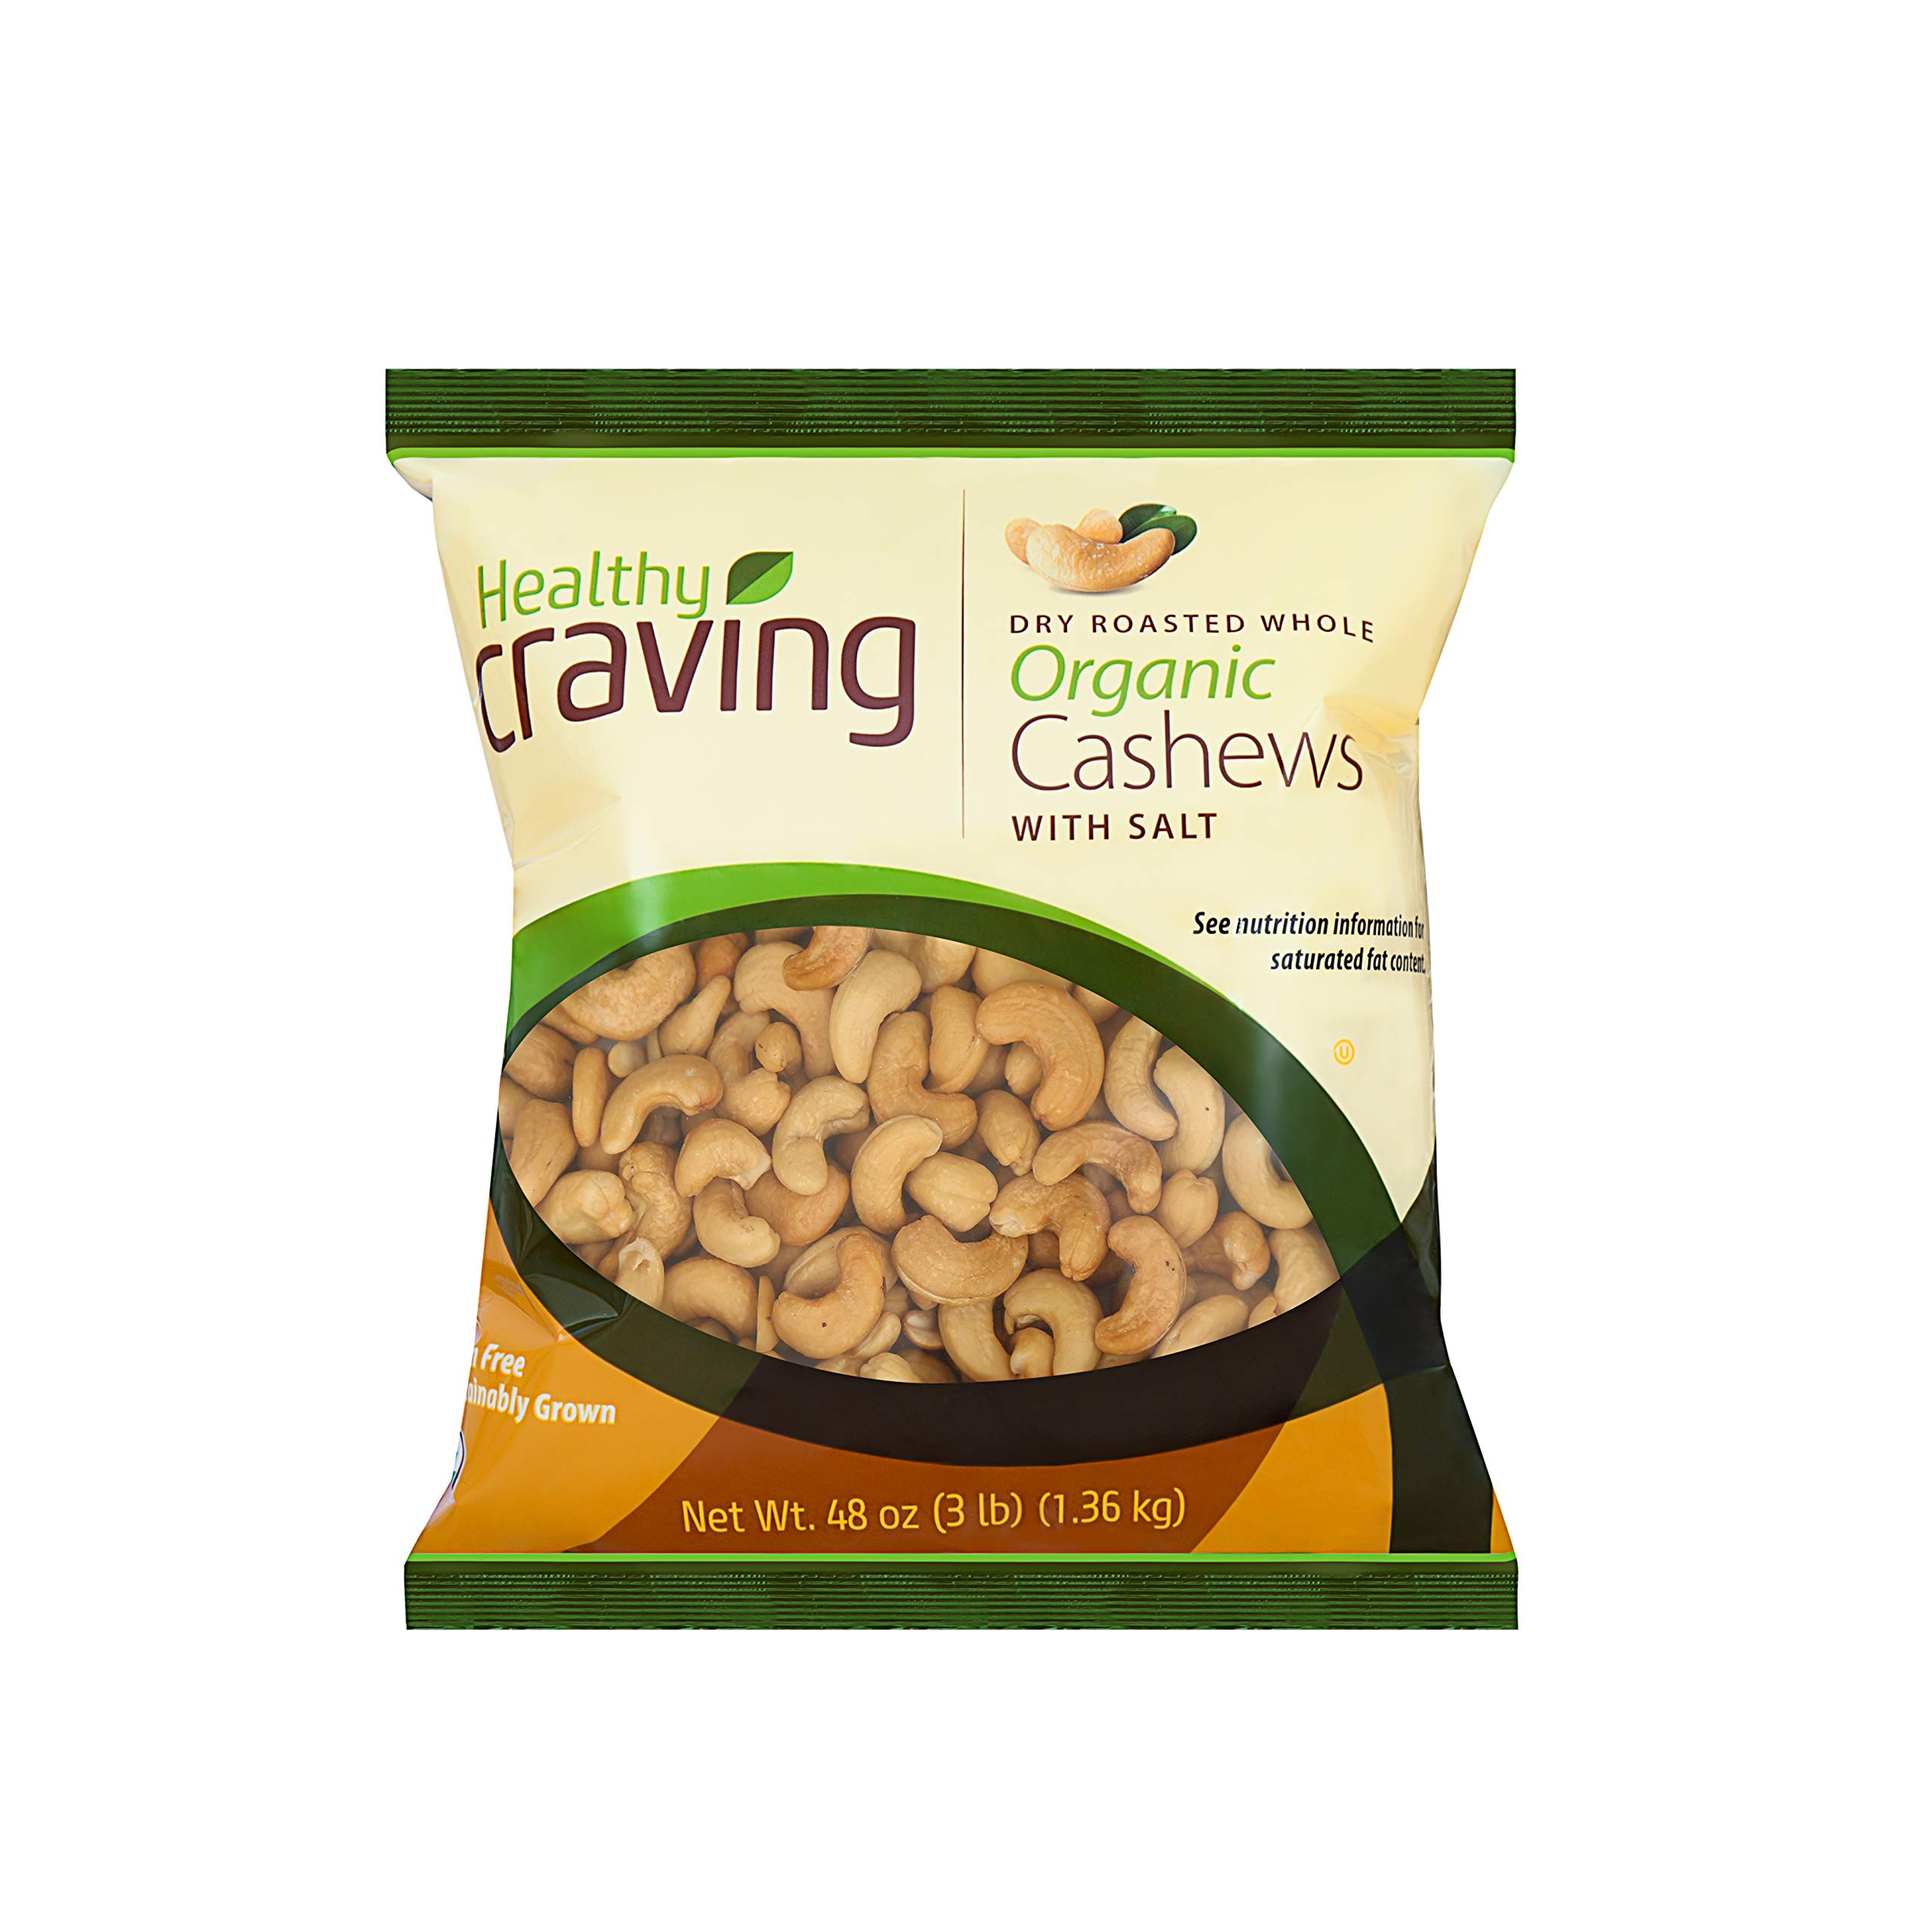 Healthy Craving Dry Roasted Salted Organic Whole Cashews, 48oz